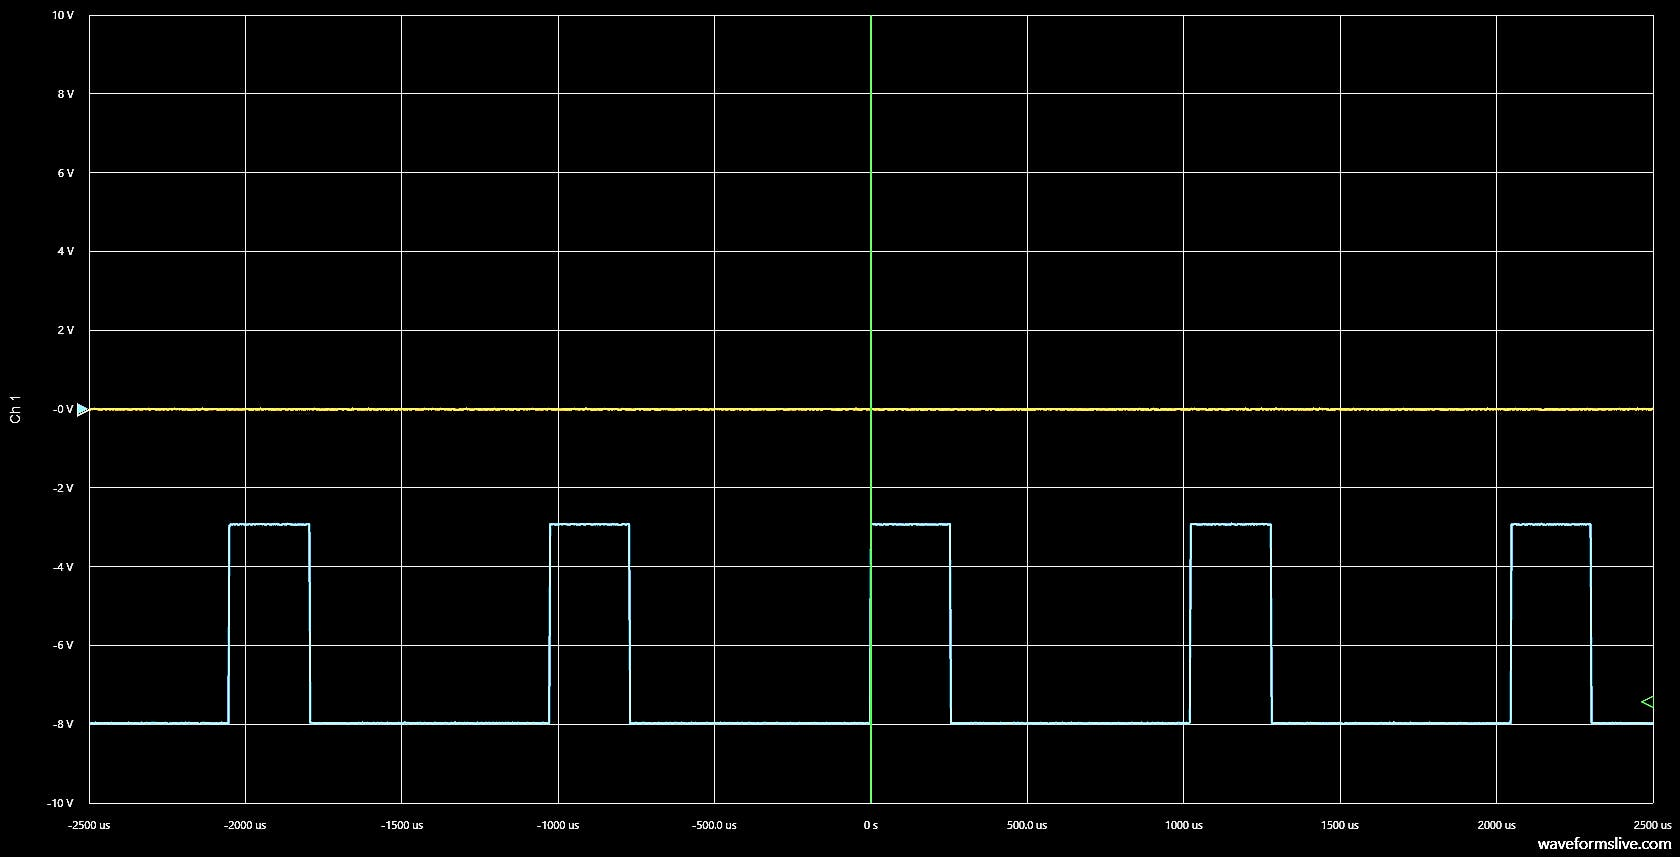 WaveForms Live screenshot of 0% (yellow) vs 25%  (blue) duty cycles.